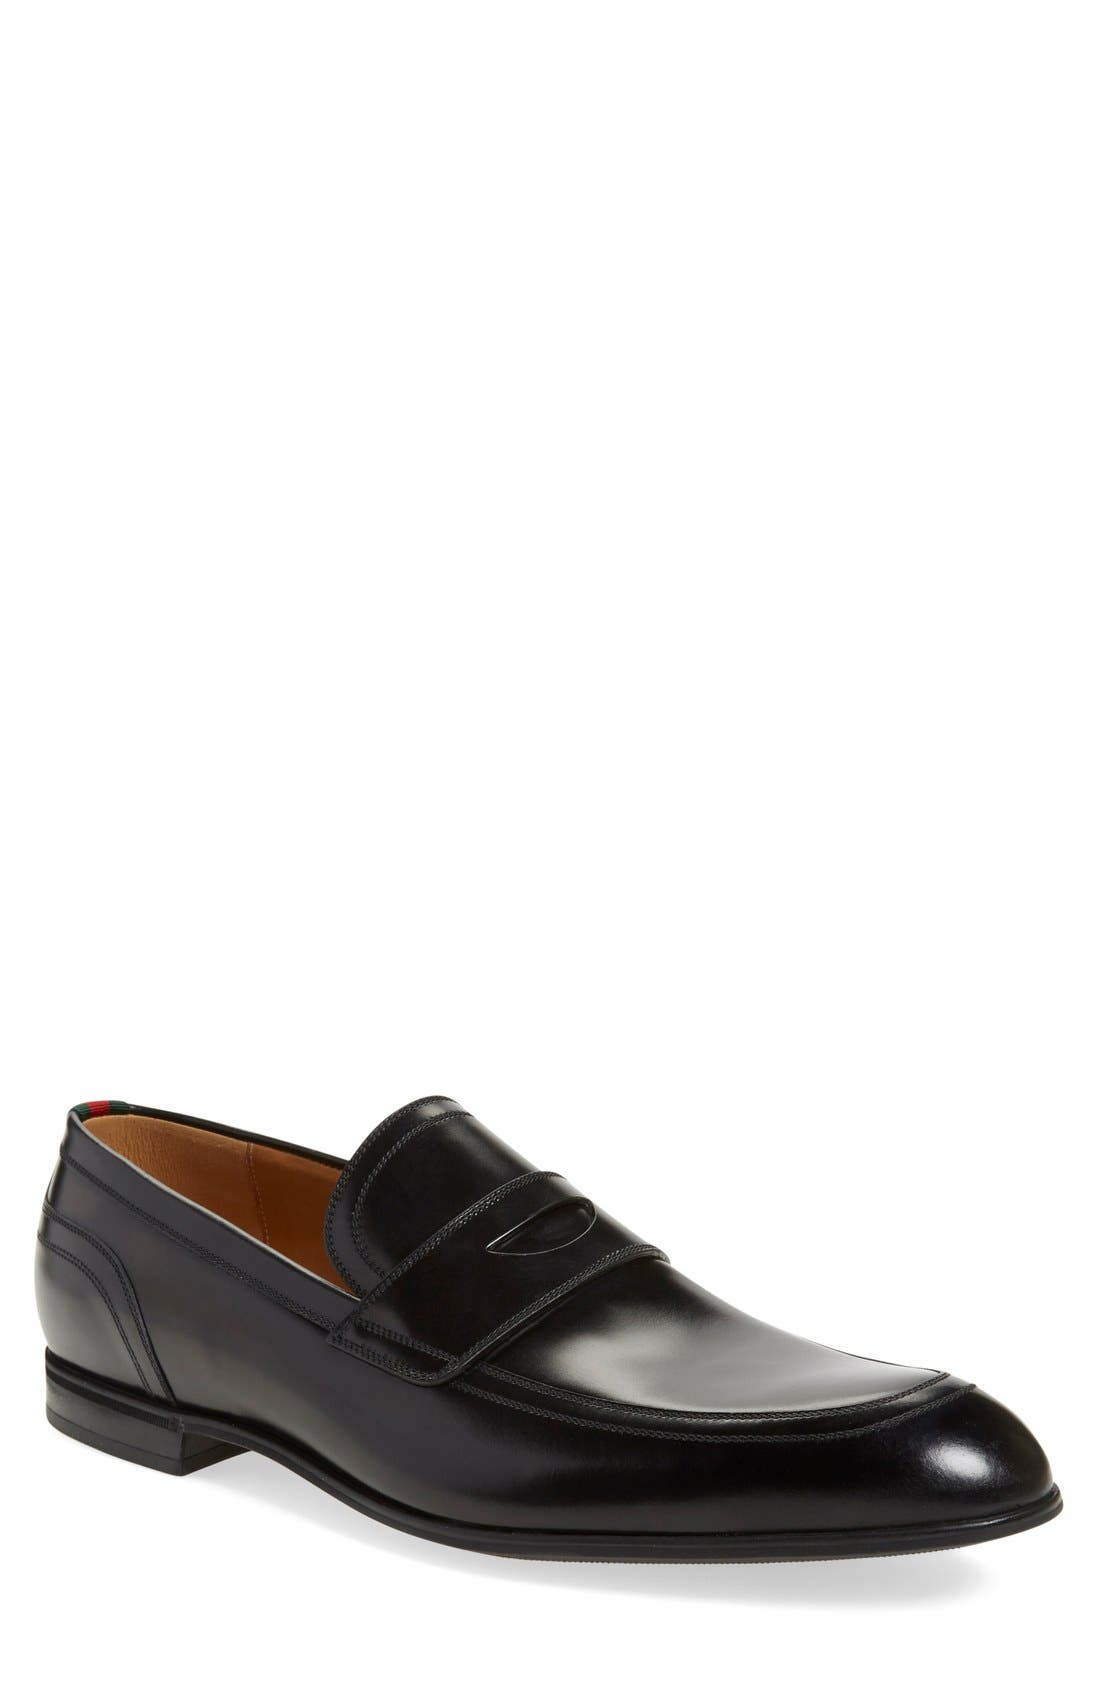 GUCCI 'Ravello' Penny Loafer